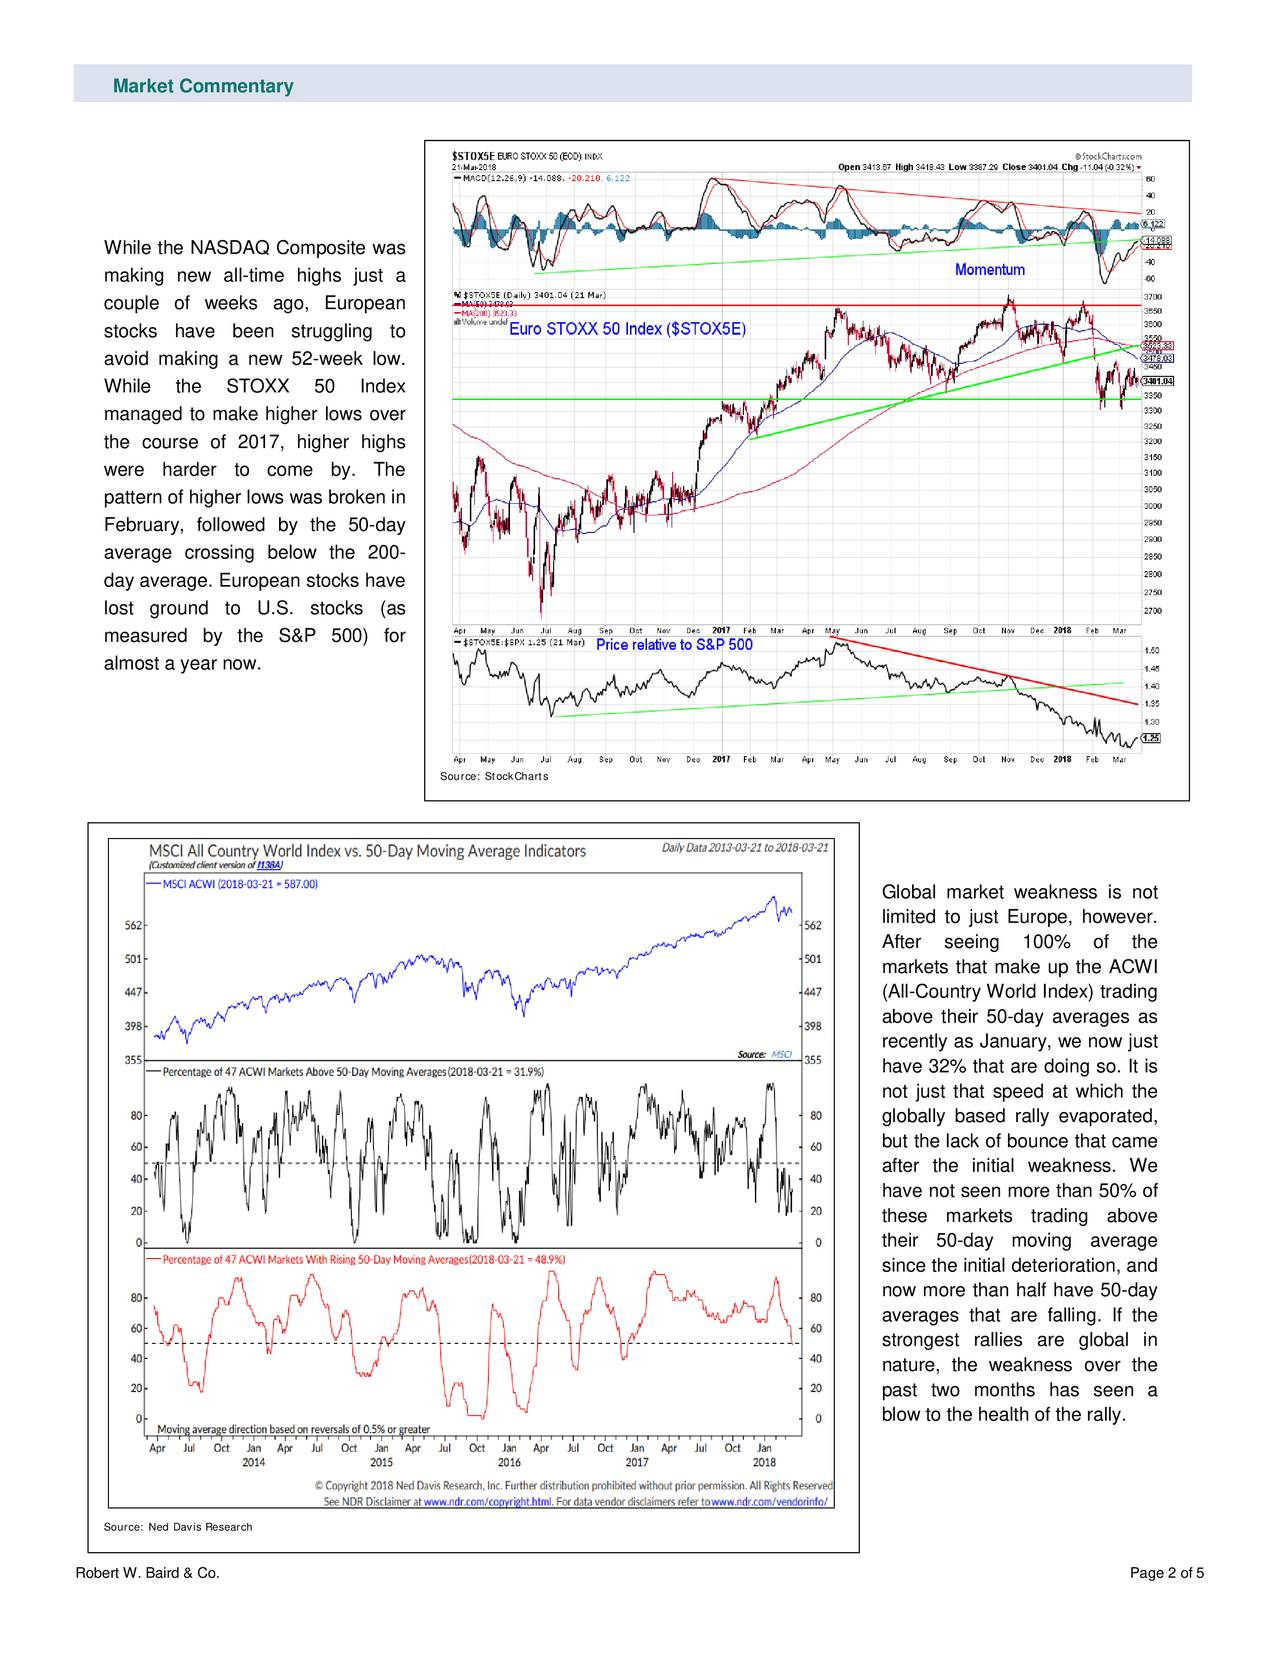 While the NASDAQ Composite was making new all -time highs just a couple of weeks ago, European stocks have been struggling to avoid making a new 52-week low. While the STOXX 50 Index managed to make higher lows over the course of 2017, higher highs were harder to come by. The pattern of higher lows was broken in February, followed by the 50-day average crossing below the 200- day average. European stocks have lost ground to U.S. stocks (as measured by the S&P 500) for almost a year now. Source: StockCharts Global market weakness is not limited to just Europe, however. After seeing 100% of the markets that make up the ACWI (All-Country World Index) trading above their 50-day averages as recently as January, we now just have 32% that are doing so. It is not just that speed at which the globally based rally evaporated, but the lack of bounce that came after the ini tial weakness. We have not seen more than 50% of these markets trading above their 50-day moving average since the initial deterioration, and now more than half have 50-day averages that are falling. If the strongest rallies are global in nature, the weakness over the past two months has seen a blow to the health of the rally. Source: Ned Davis Research Robert W. Baird & Co. Page 2 of 5